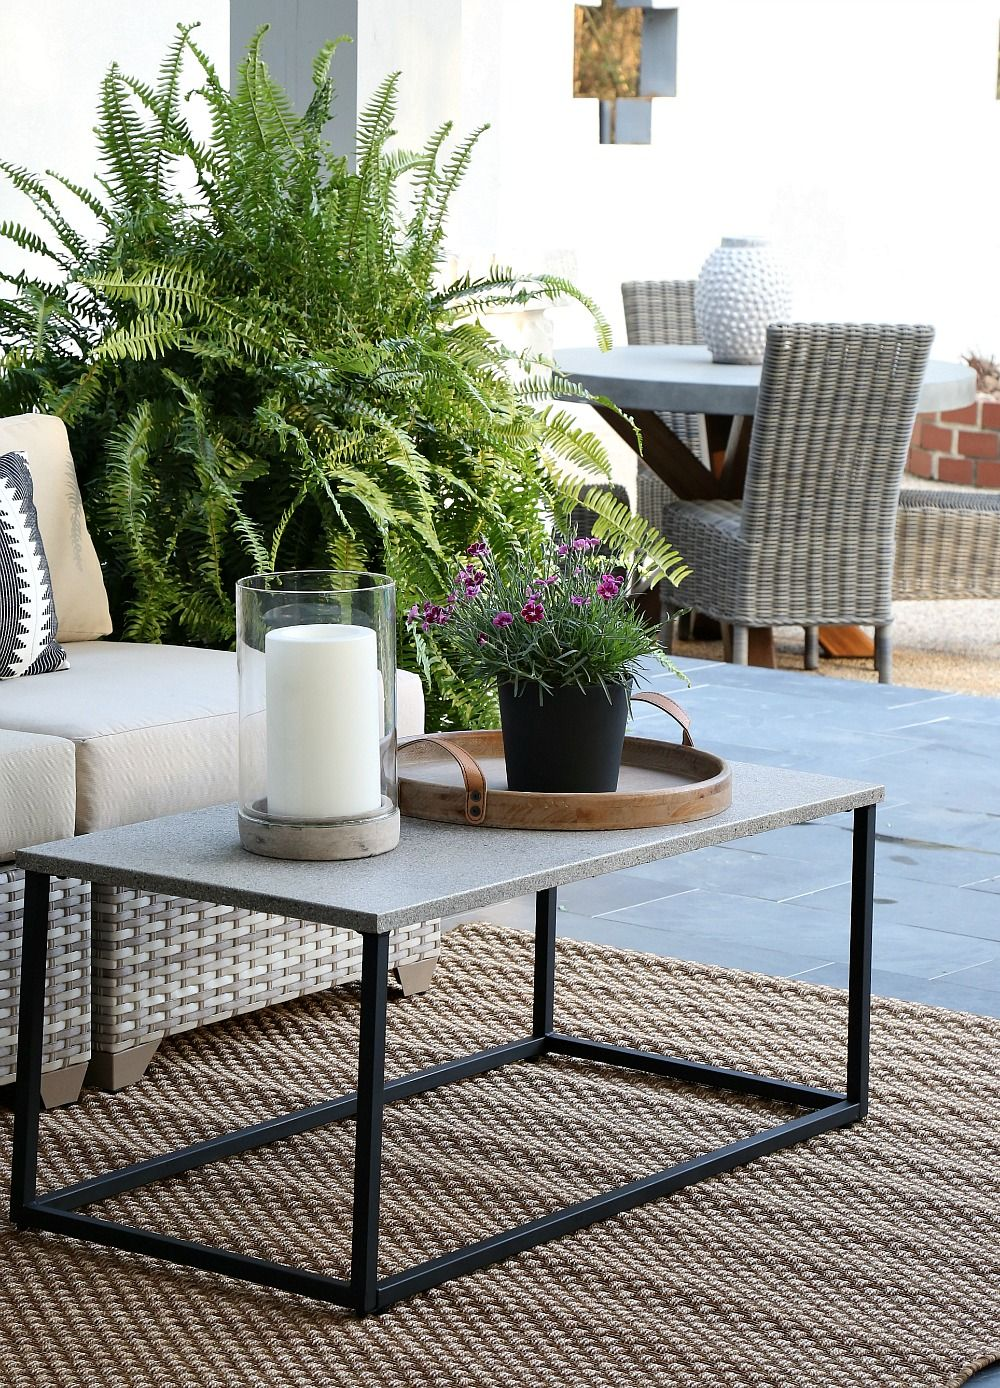 Outdoor Patio Decor Furniture And Accessories